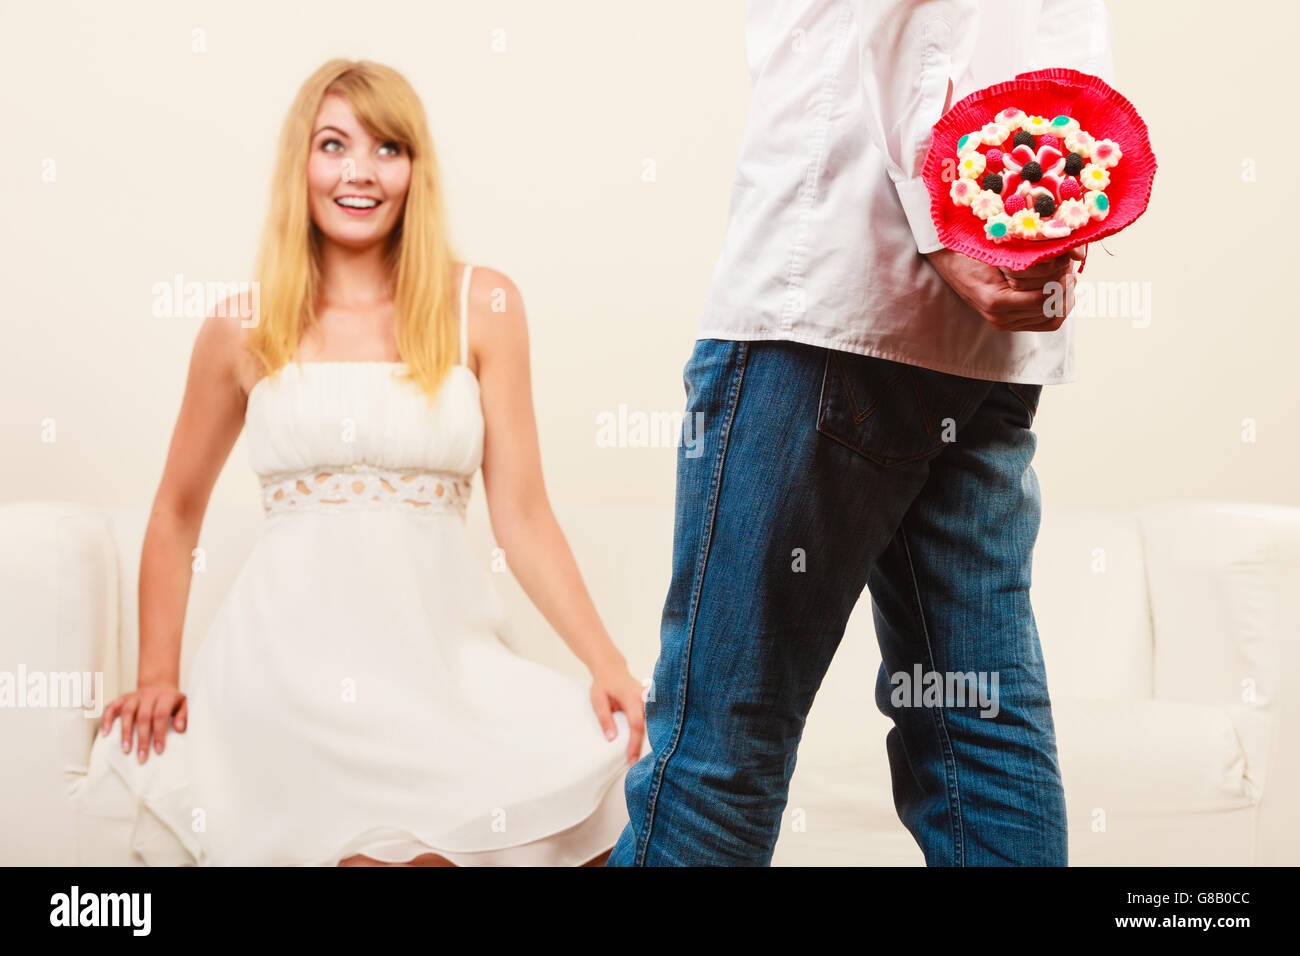 Man Holding Candy Bunch Flowers Boyfriend With Surprise Present